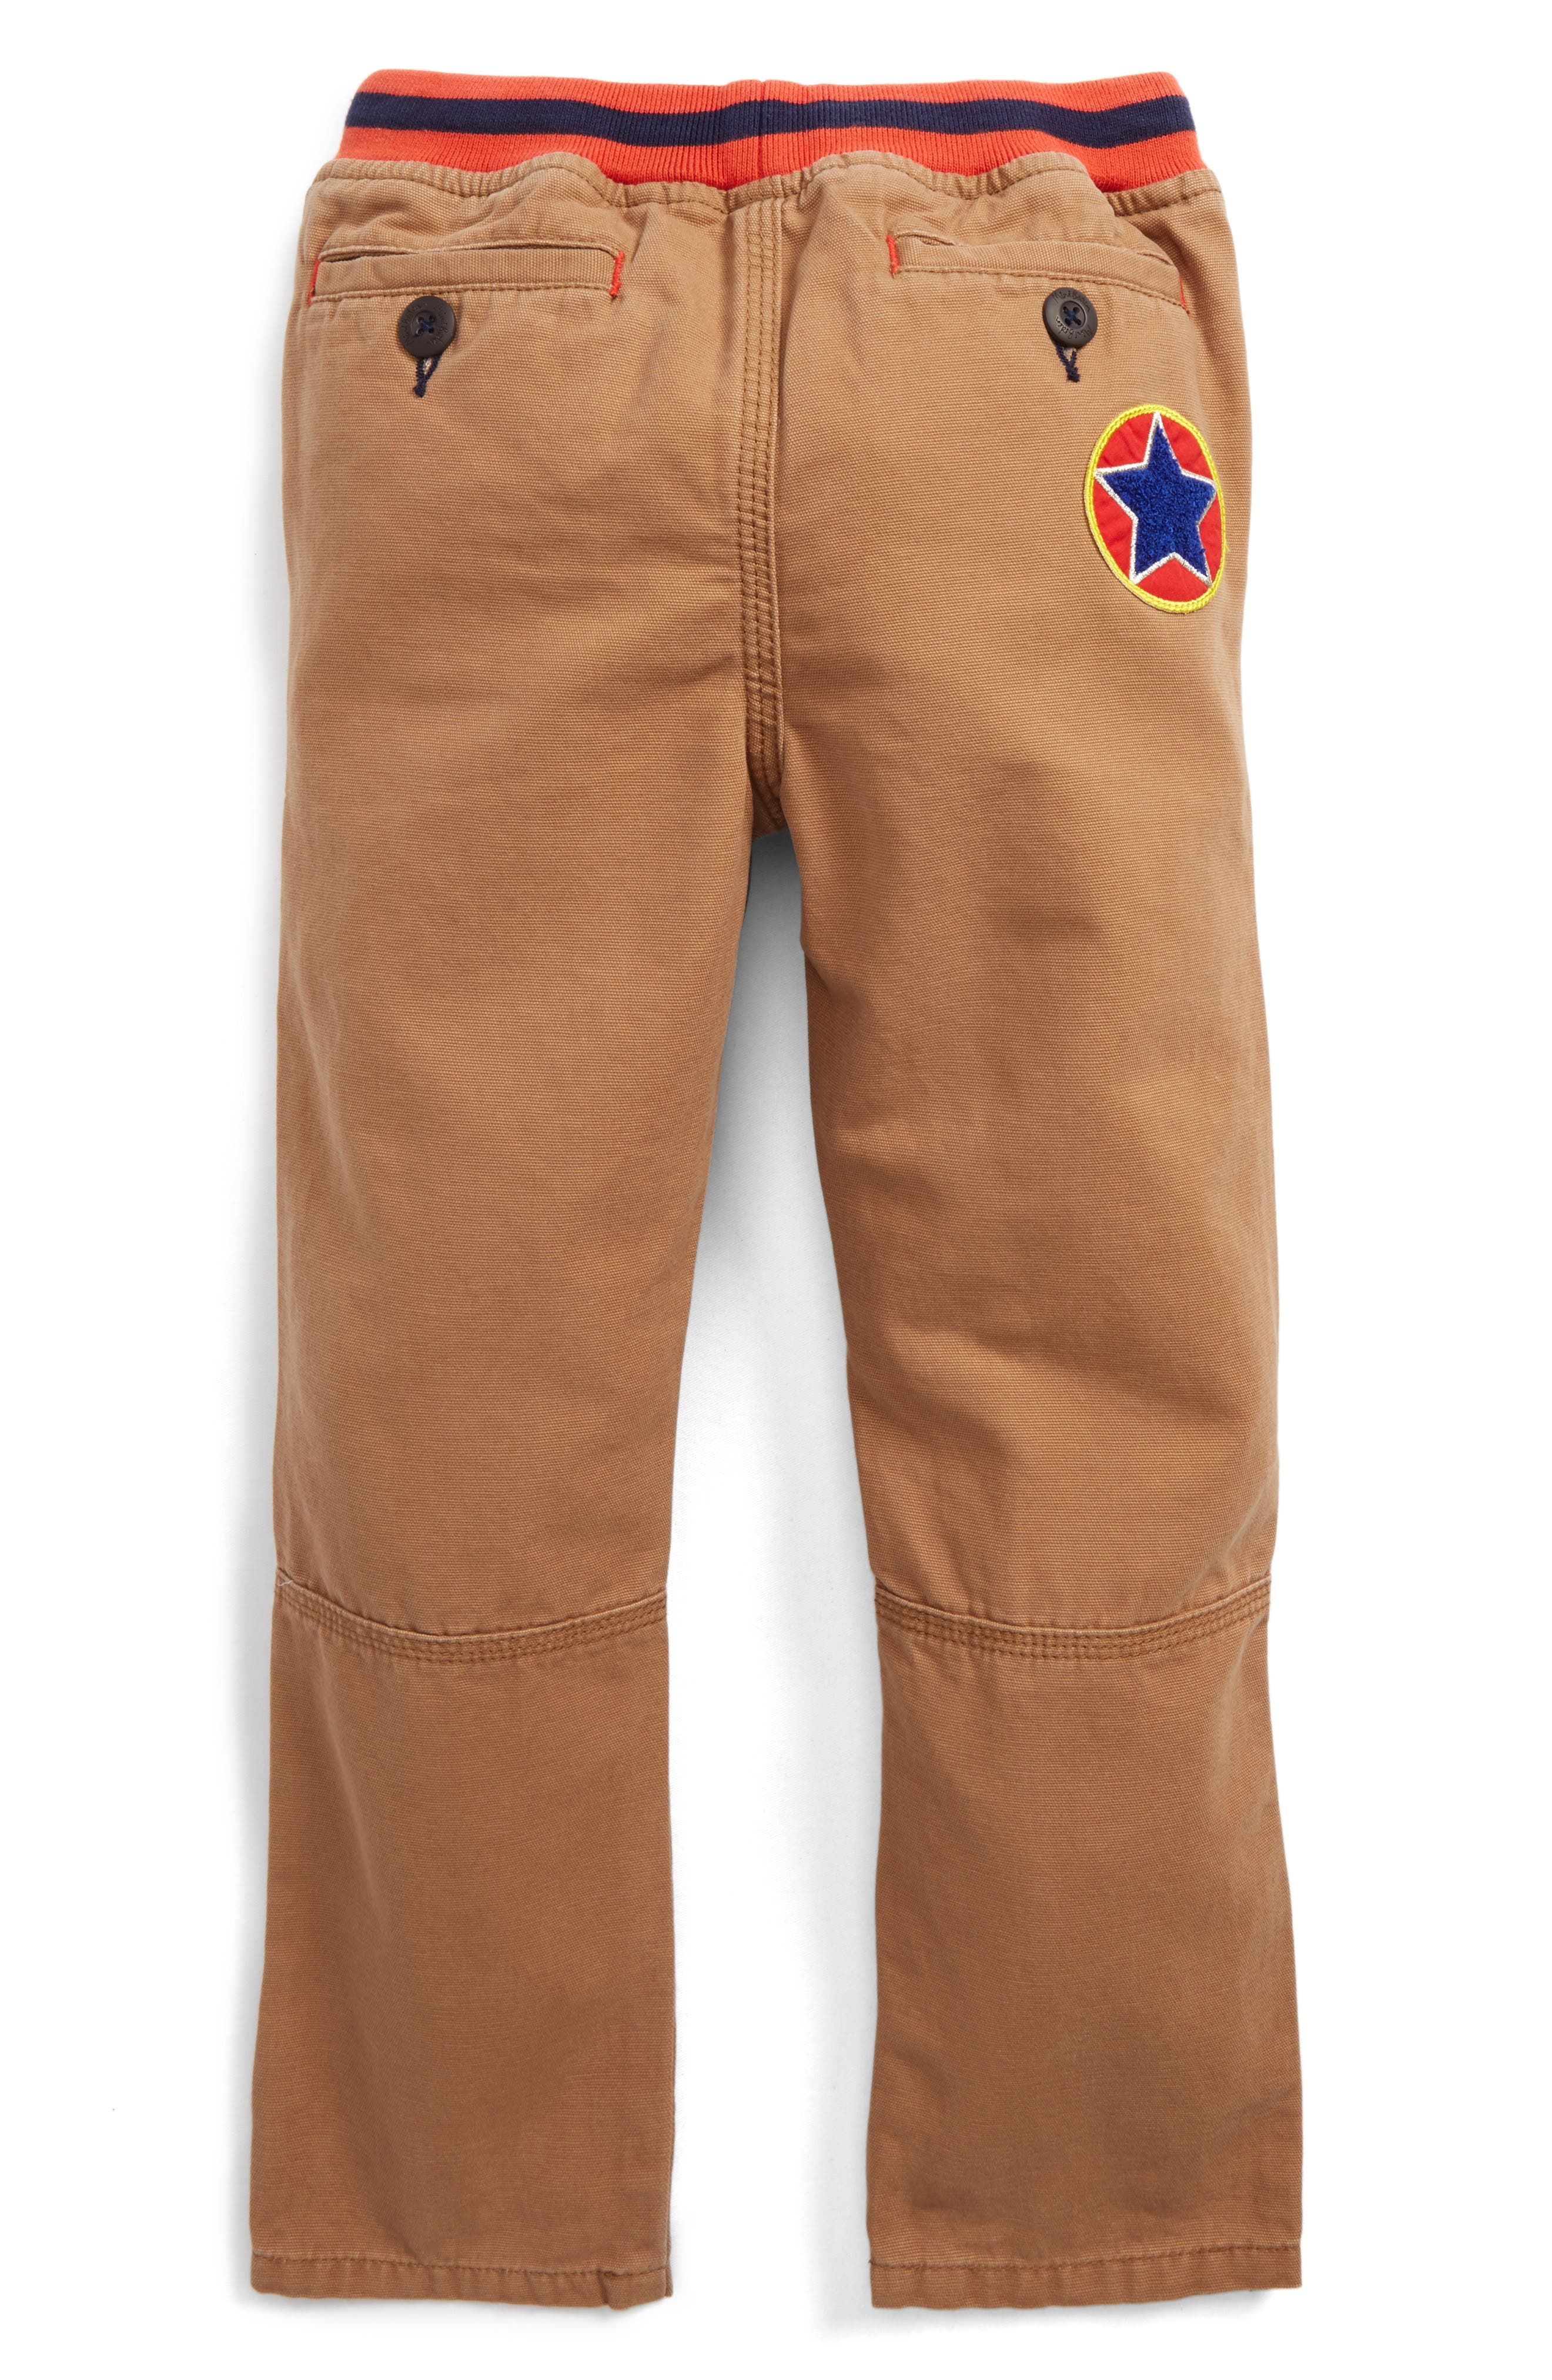 Pull-On Canvas Pants,                             Alternate thumbnail 2, color,                             Camel